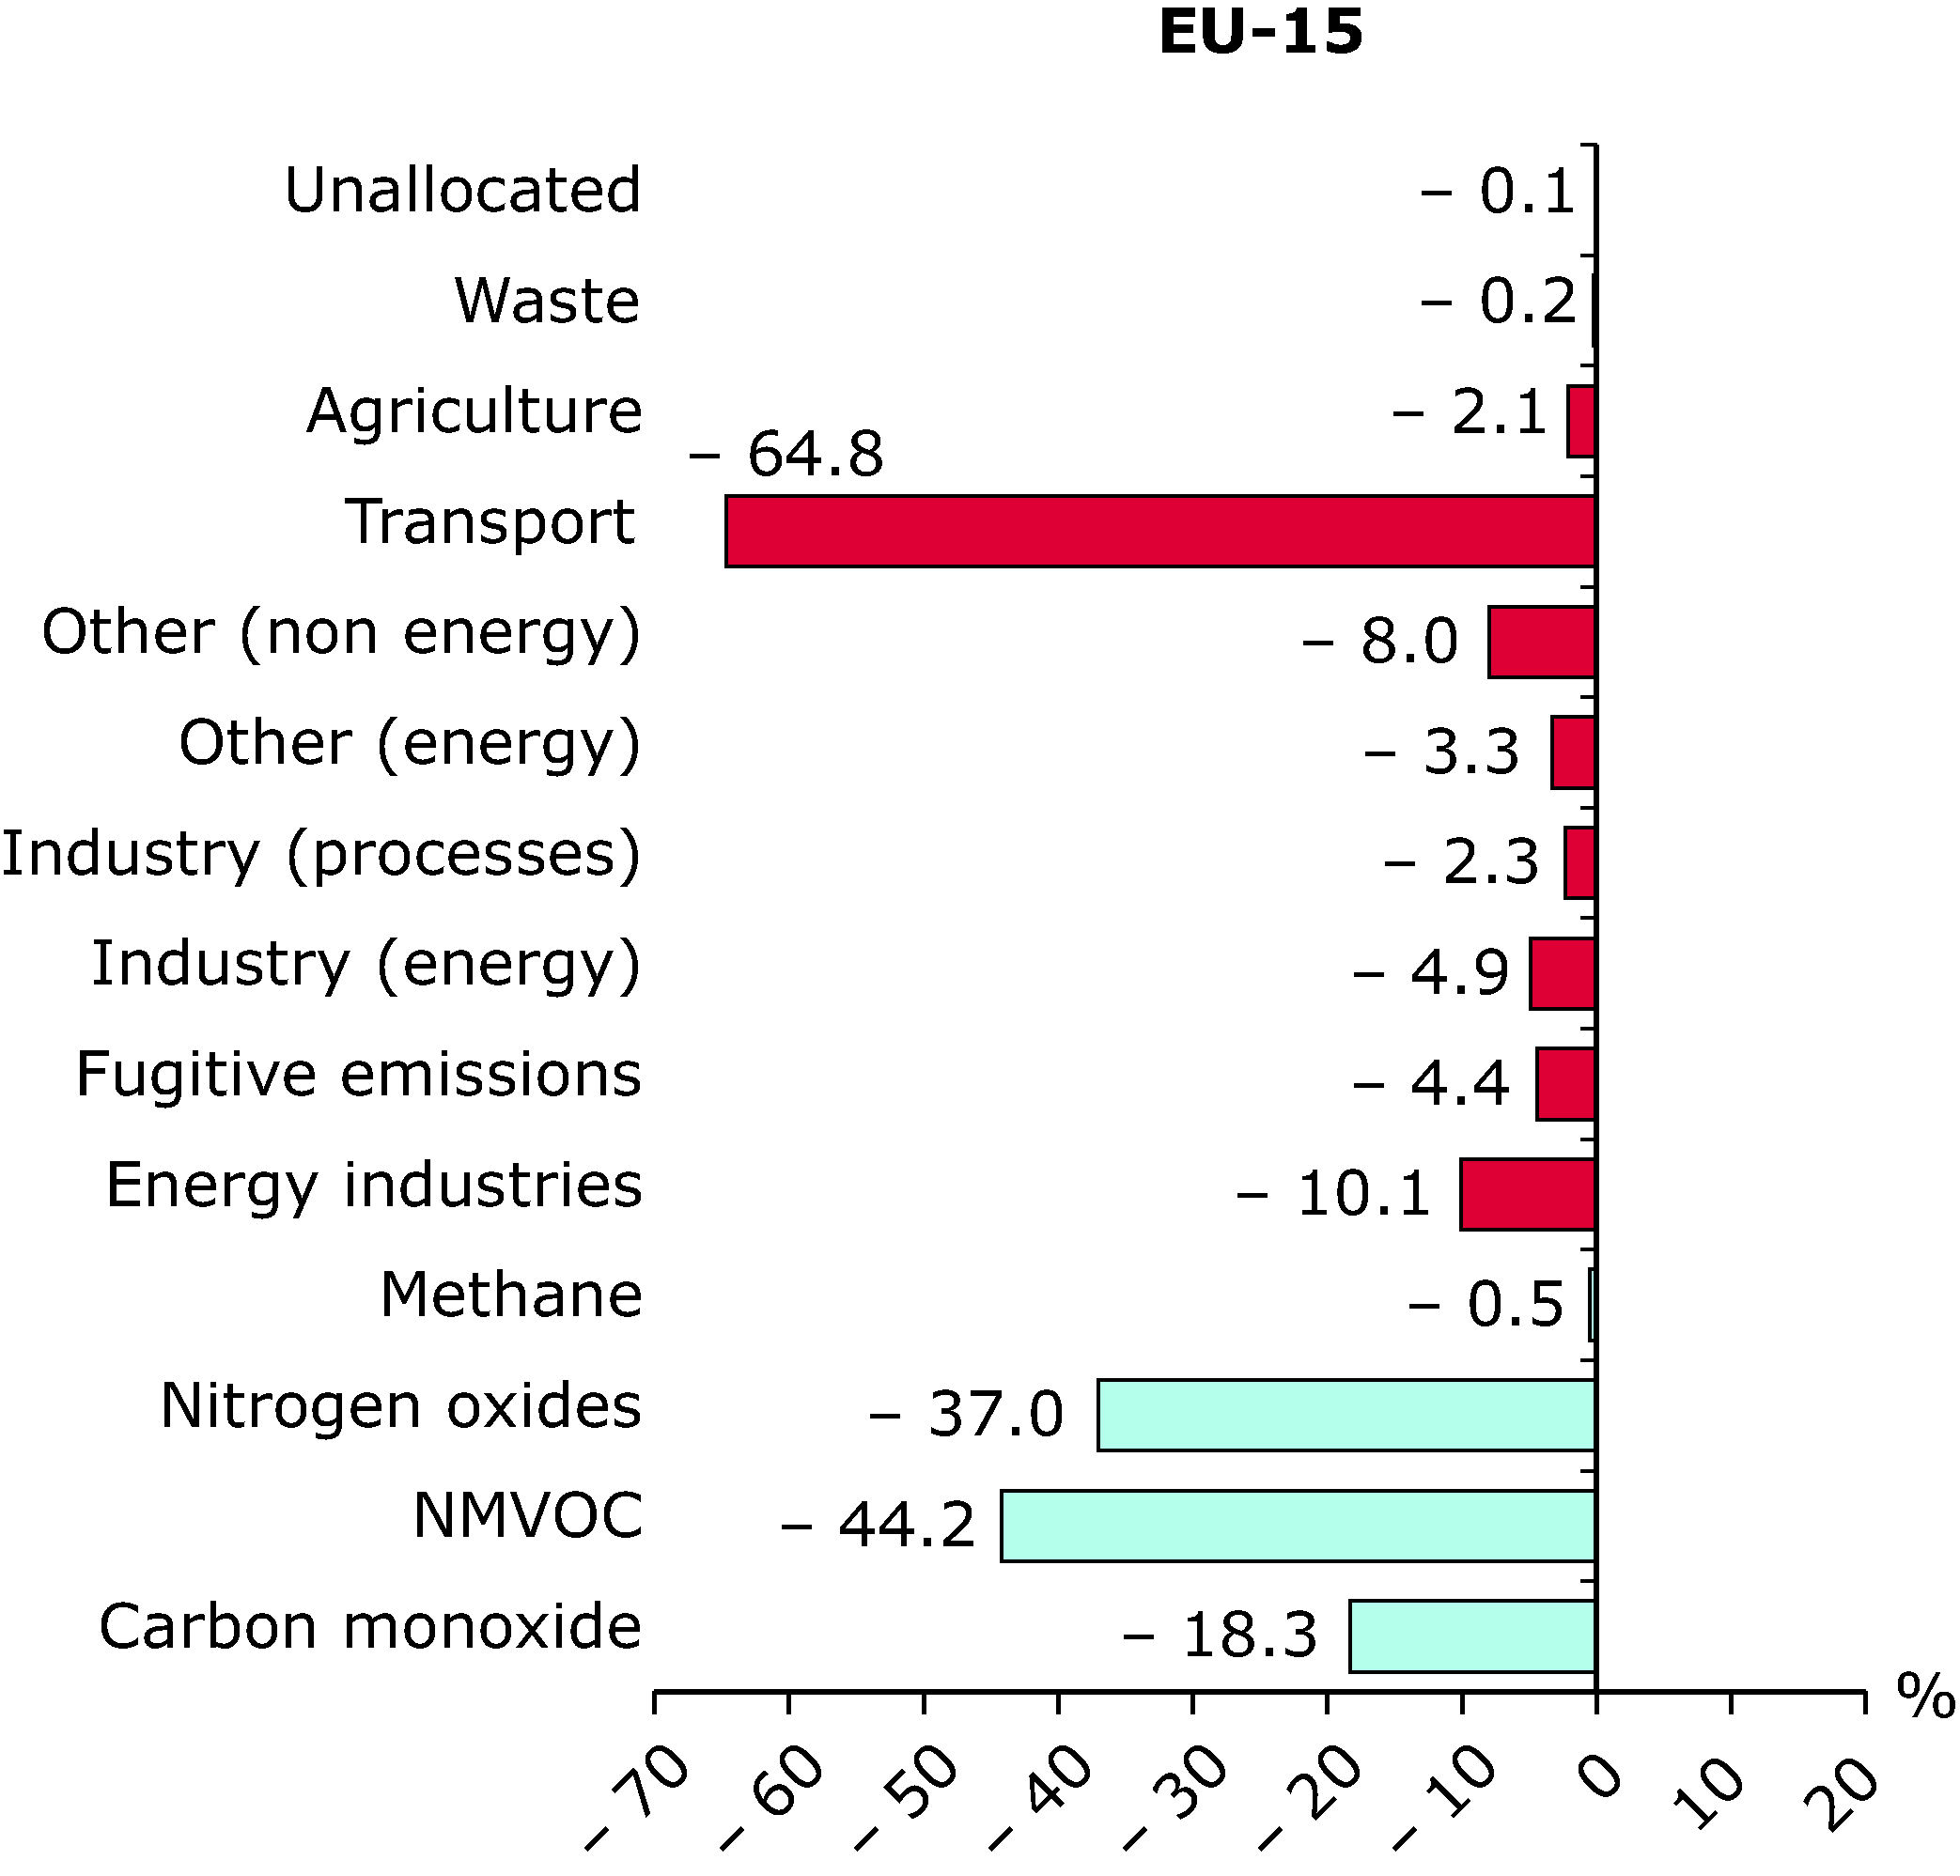 Contribution to change in ozone precursors emissions for each sector and pollutant (EU-15), 1990-2002